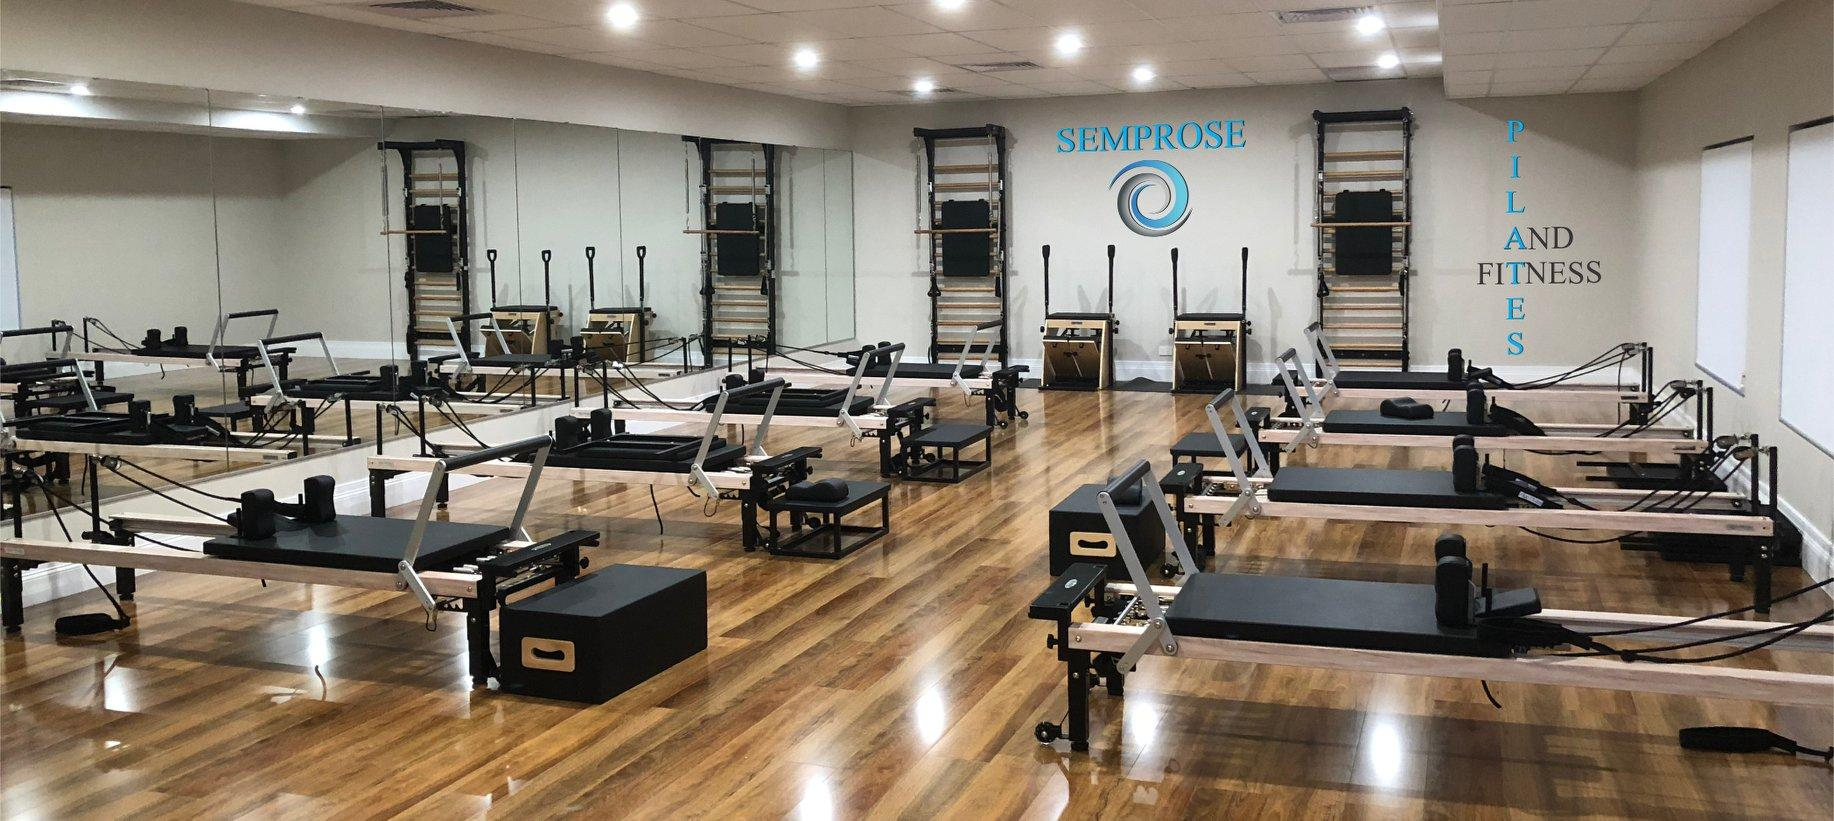 Semprose Pilates and Fitness - pilates studio